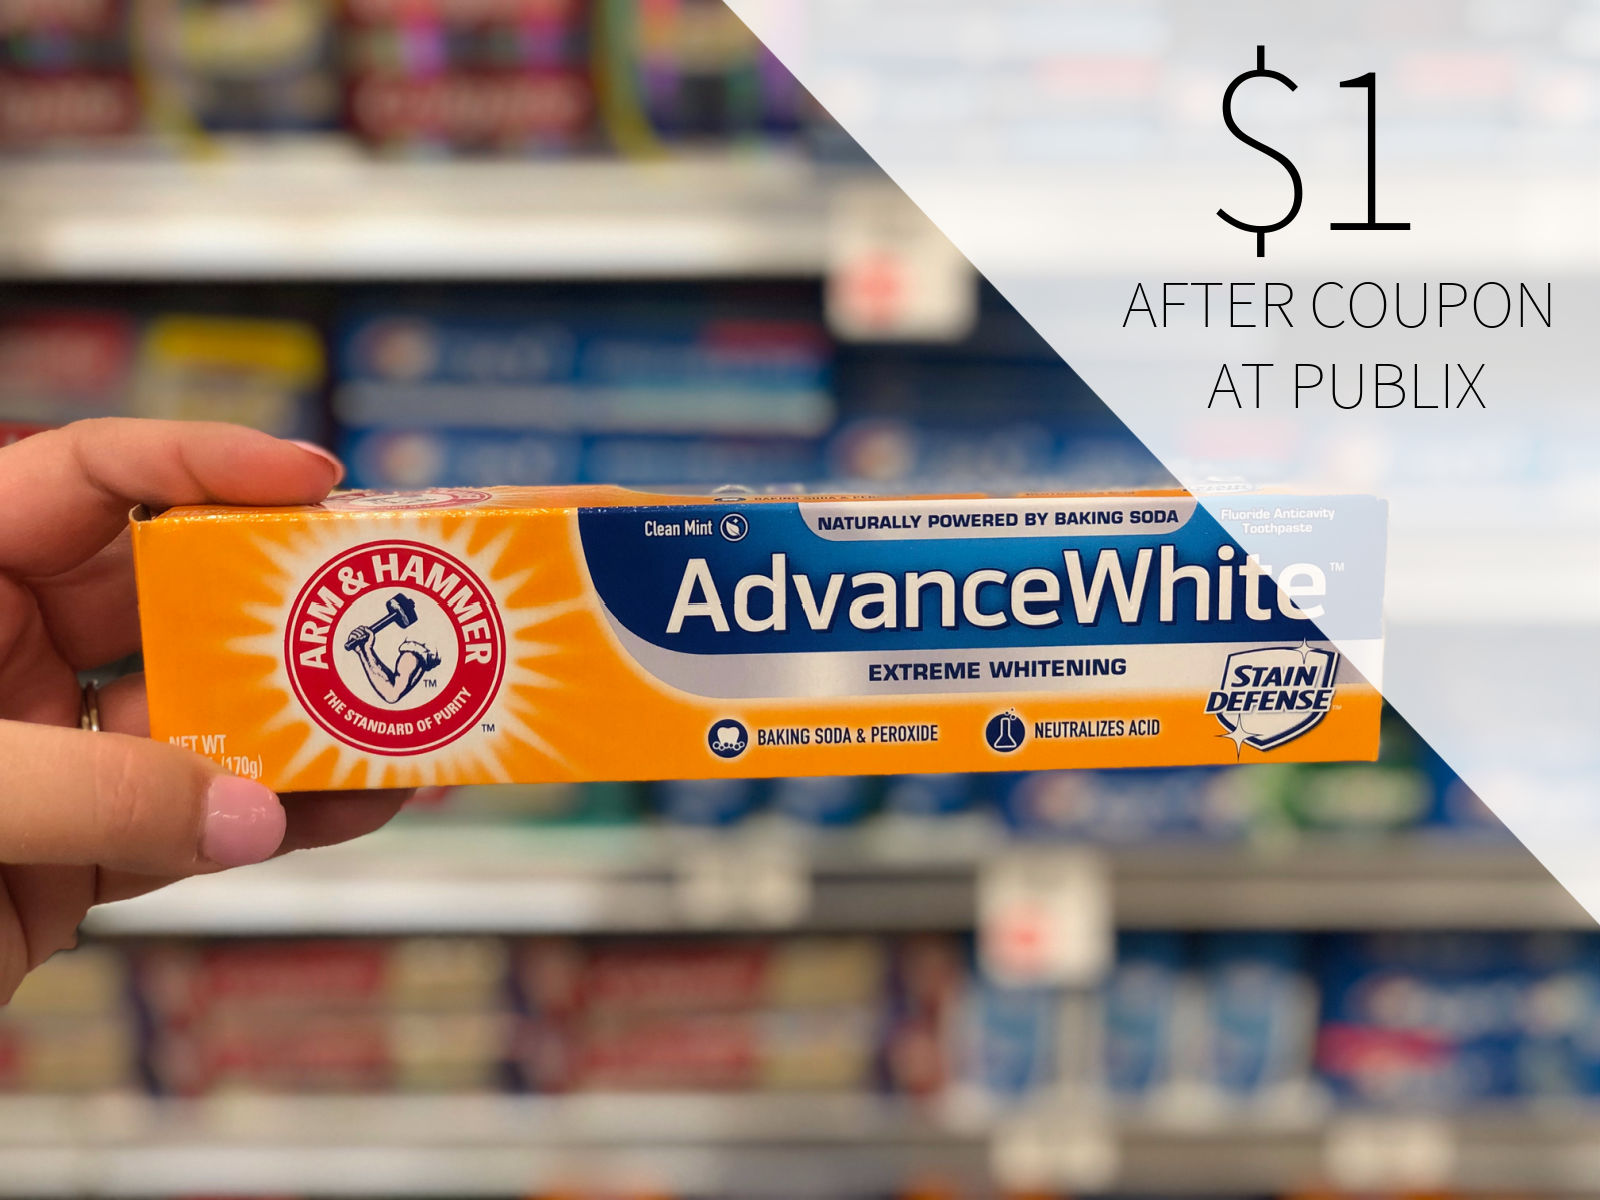 Lots Of New Arm & Hammer Coupons To Print on I Heart Publix